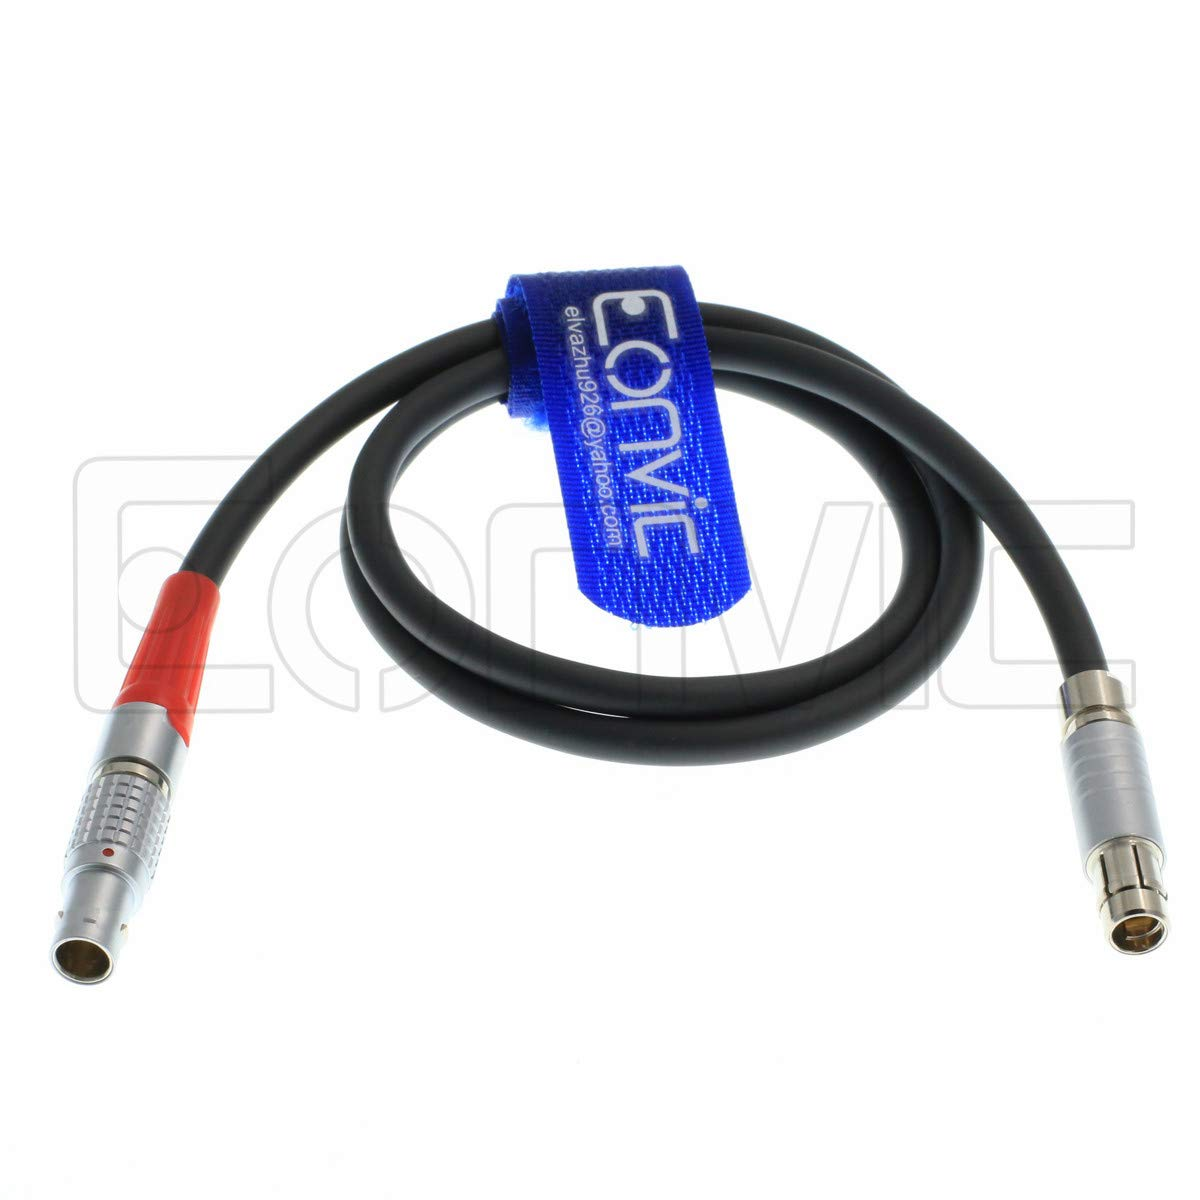 Eonvic Power cale for Arri Lbus FIZ Motor Fischer 3pin to 4 pin Male Connector